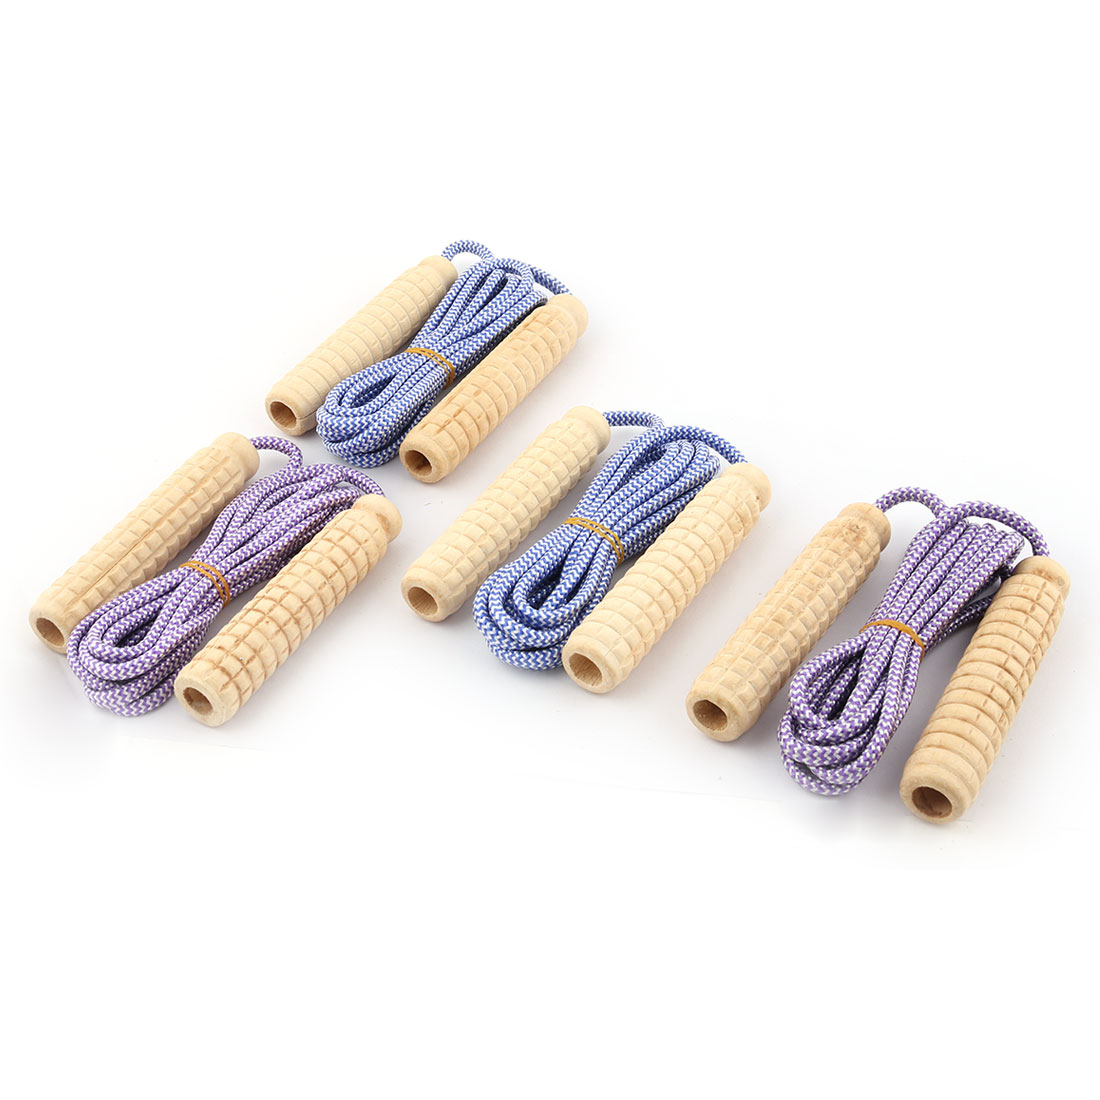 Cardio Fitness Wooden Handle Striped Elastic Excercise Jumping Rope Purple Blue 2.5m Long 4pcs